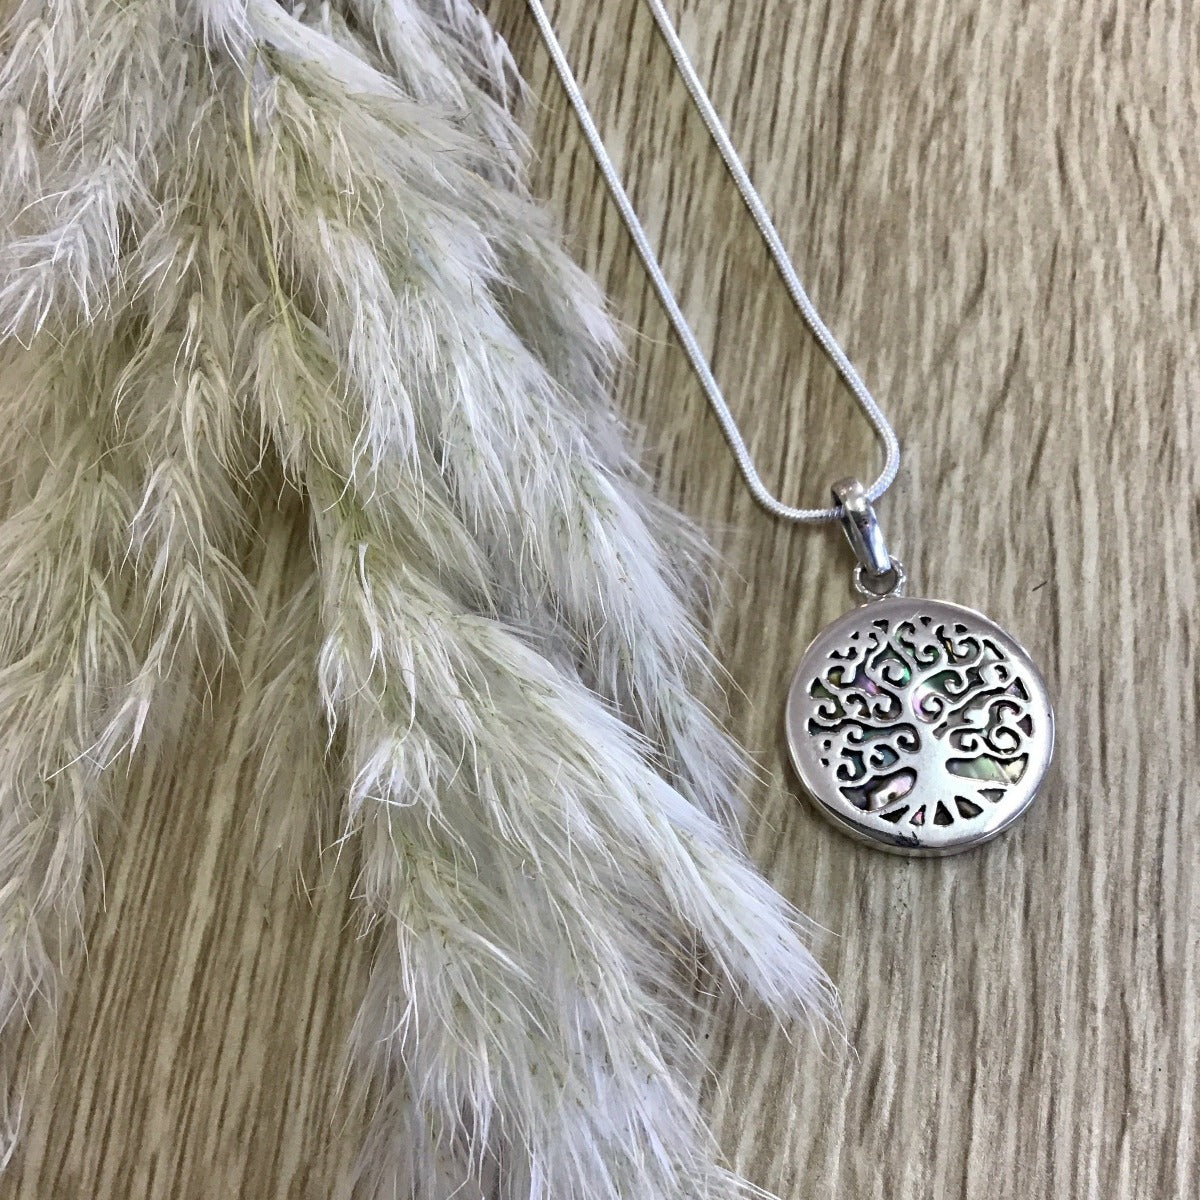 jade kiwi kaikoura sterling silver necklace pendant with paua shell tree of life